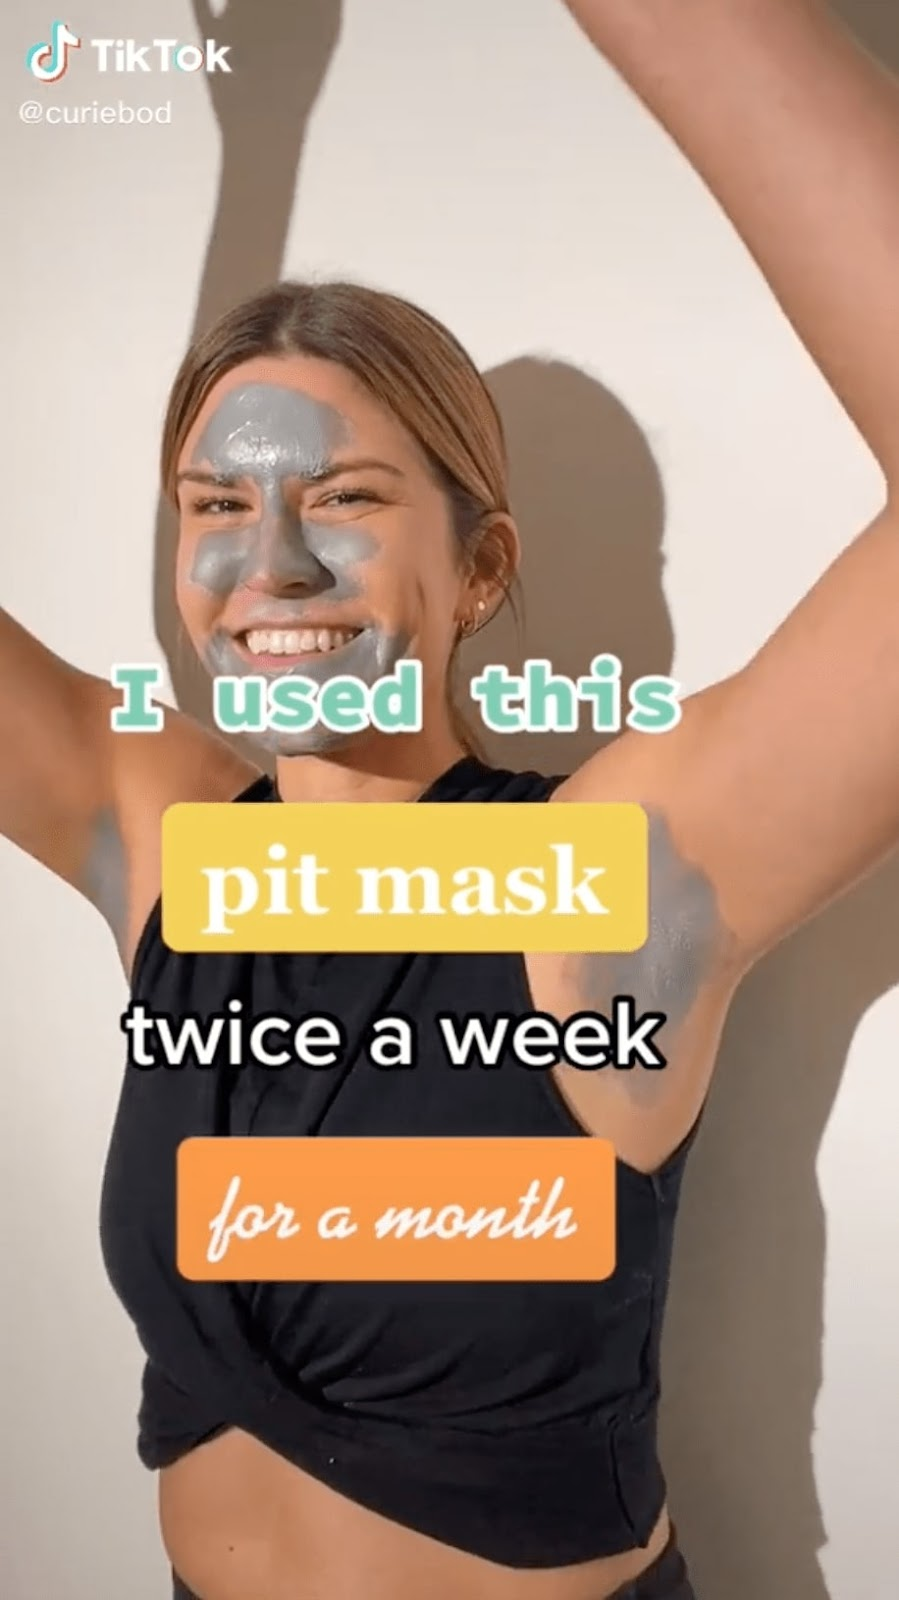 """Screenshot of Curie's tiktok which features a woman standing with her arms in the air with text that says """"I used this pit mask twice a week for a month."""""""